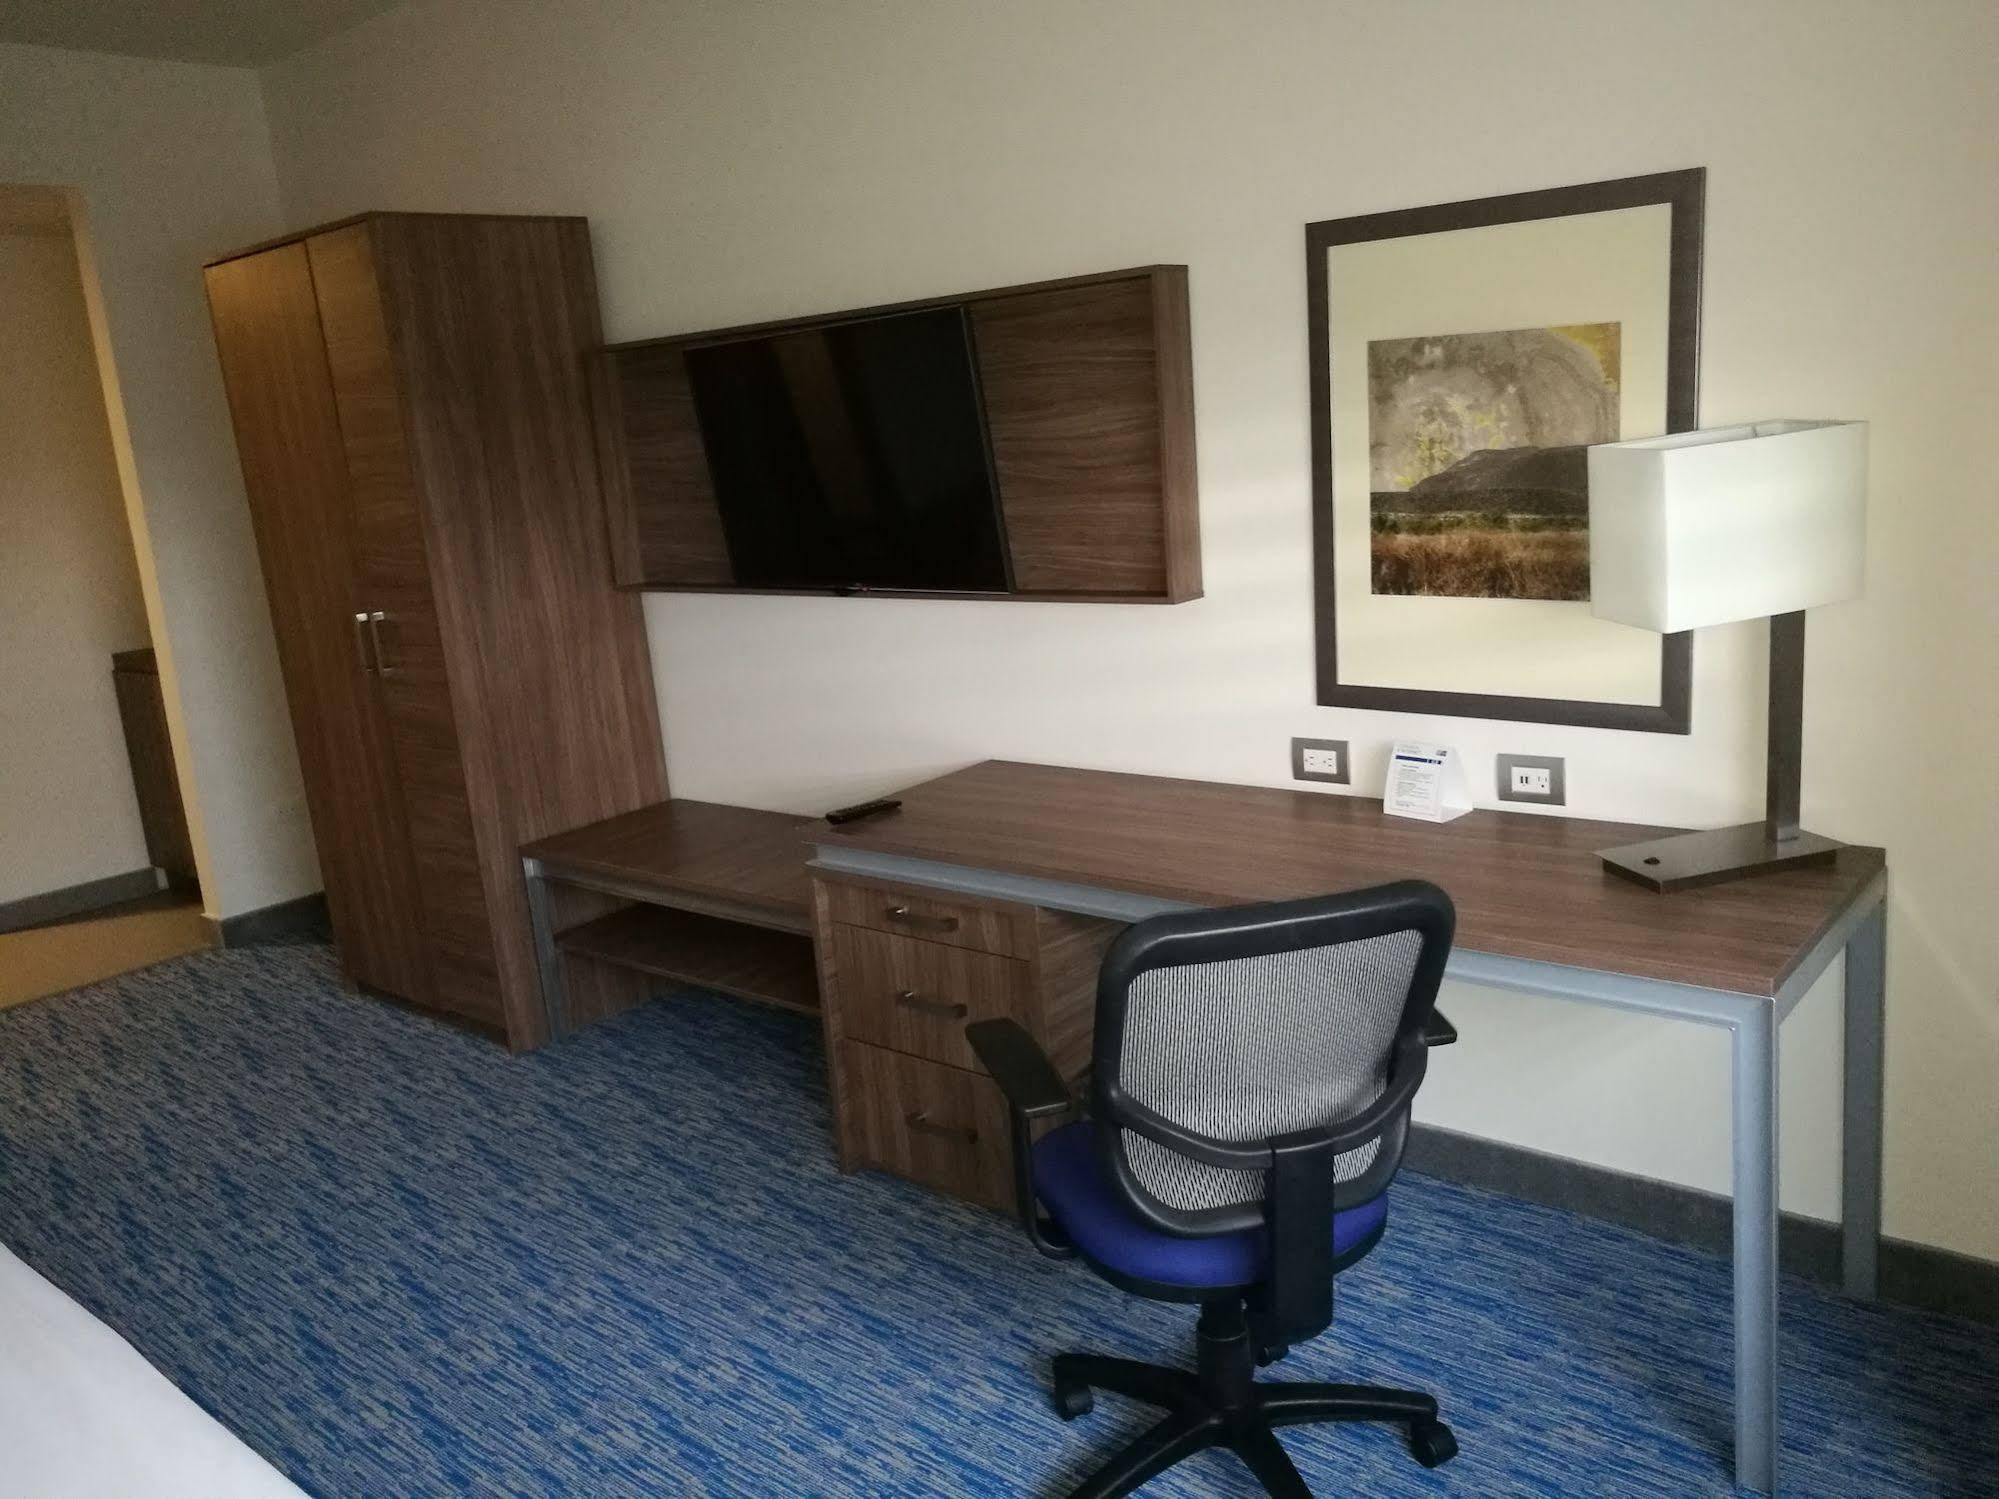 Holiday Inn Express and Suites Ciudad Obregon